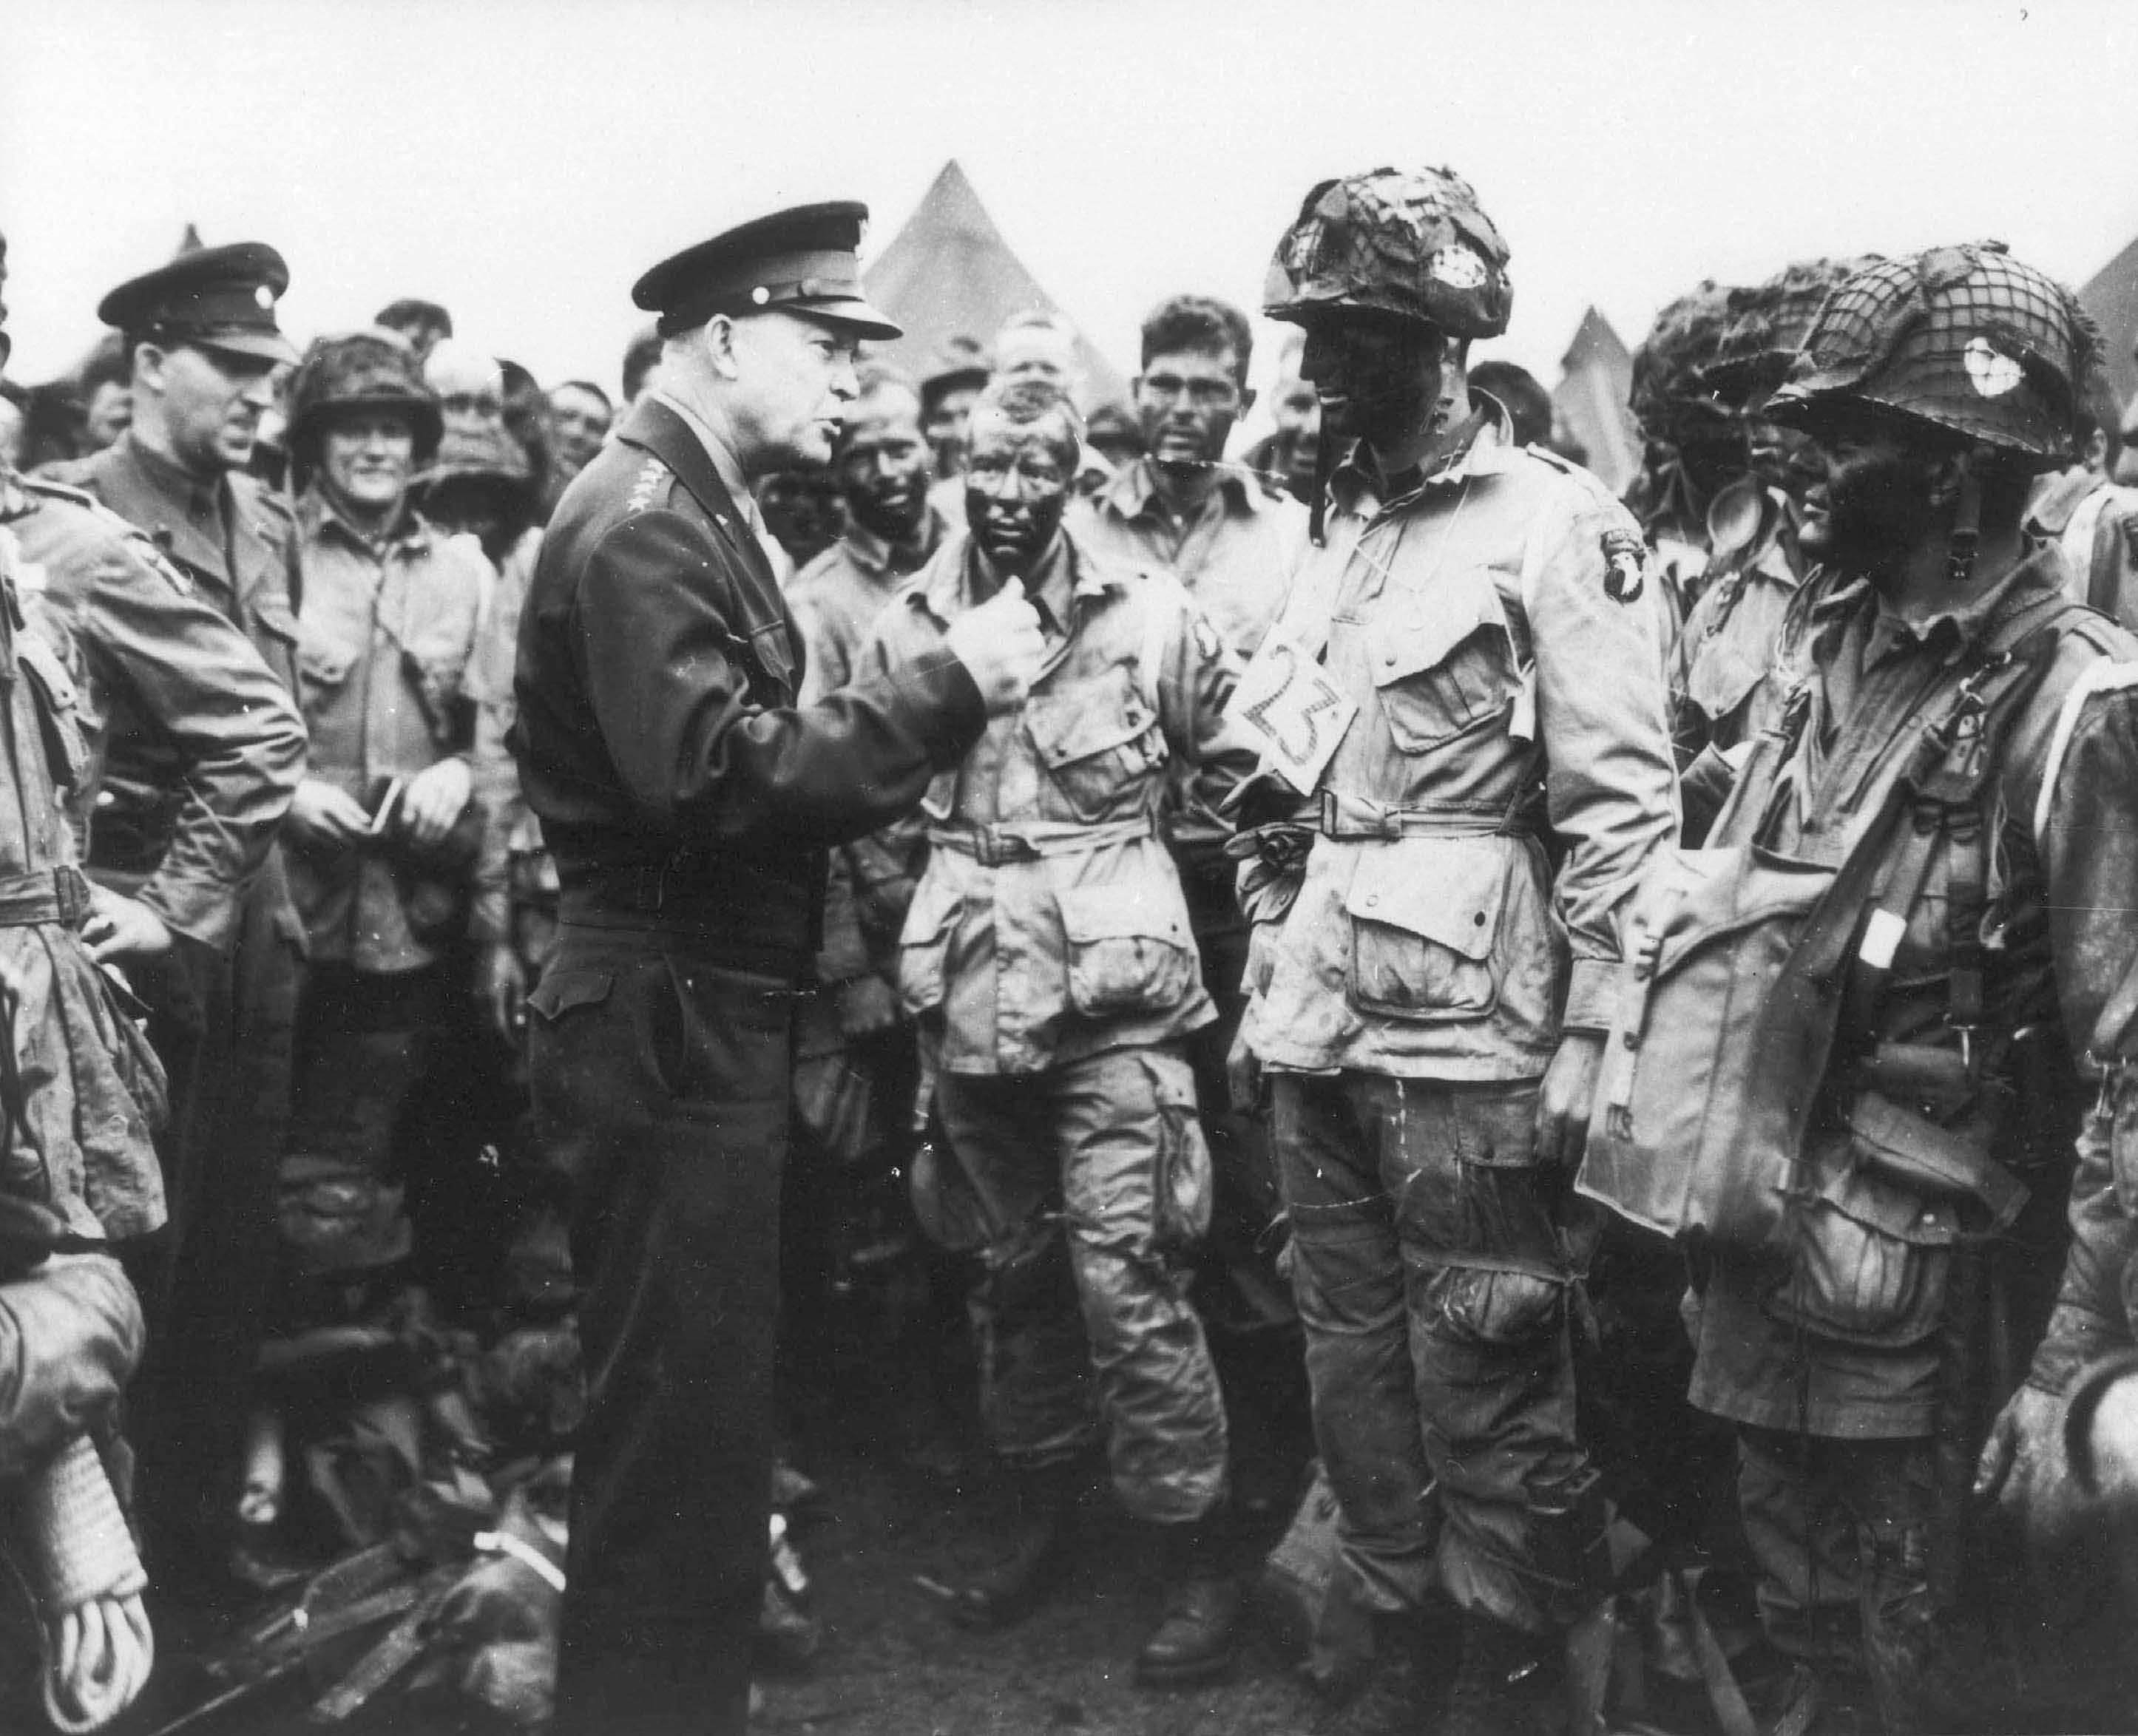 Normandy D-Day Invasion, Eisenhower, Paratroopers, history, WWII